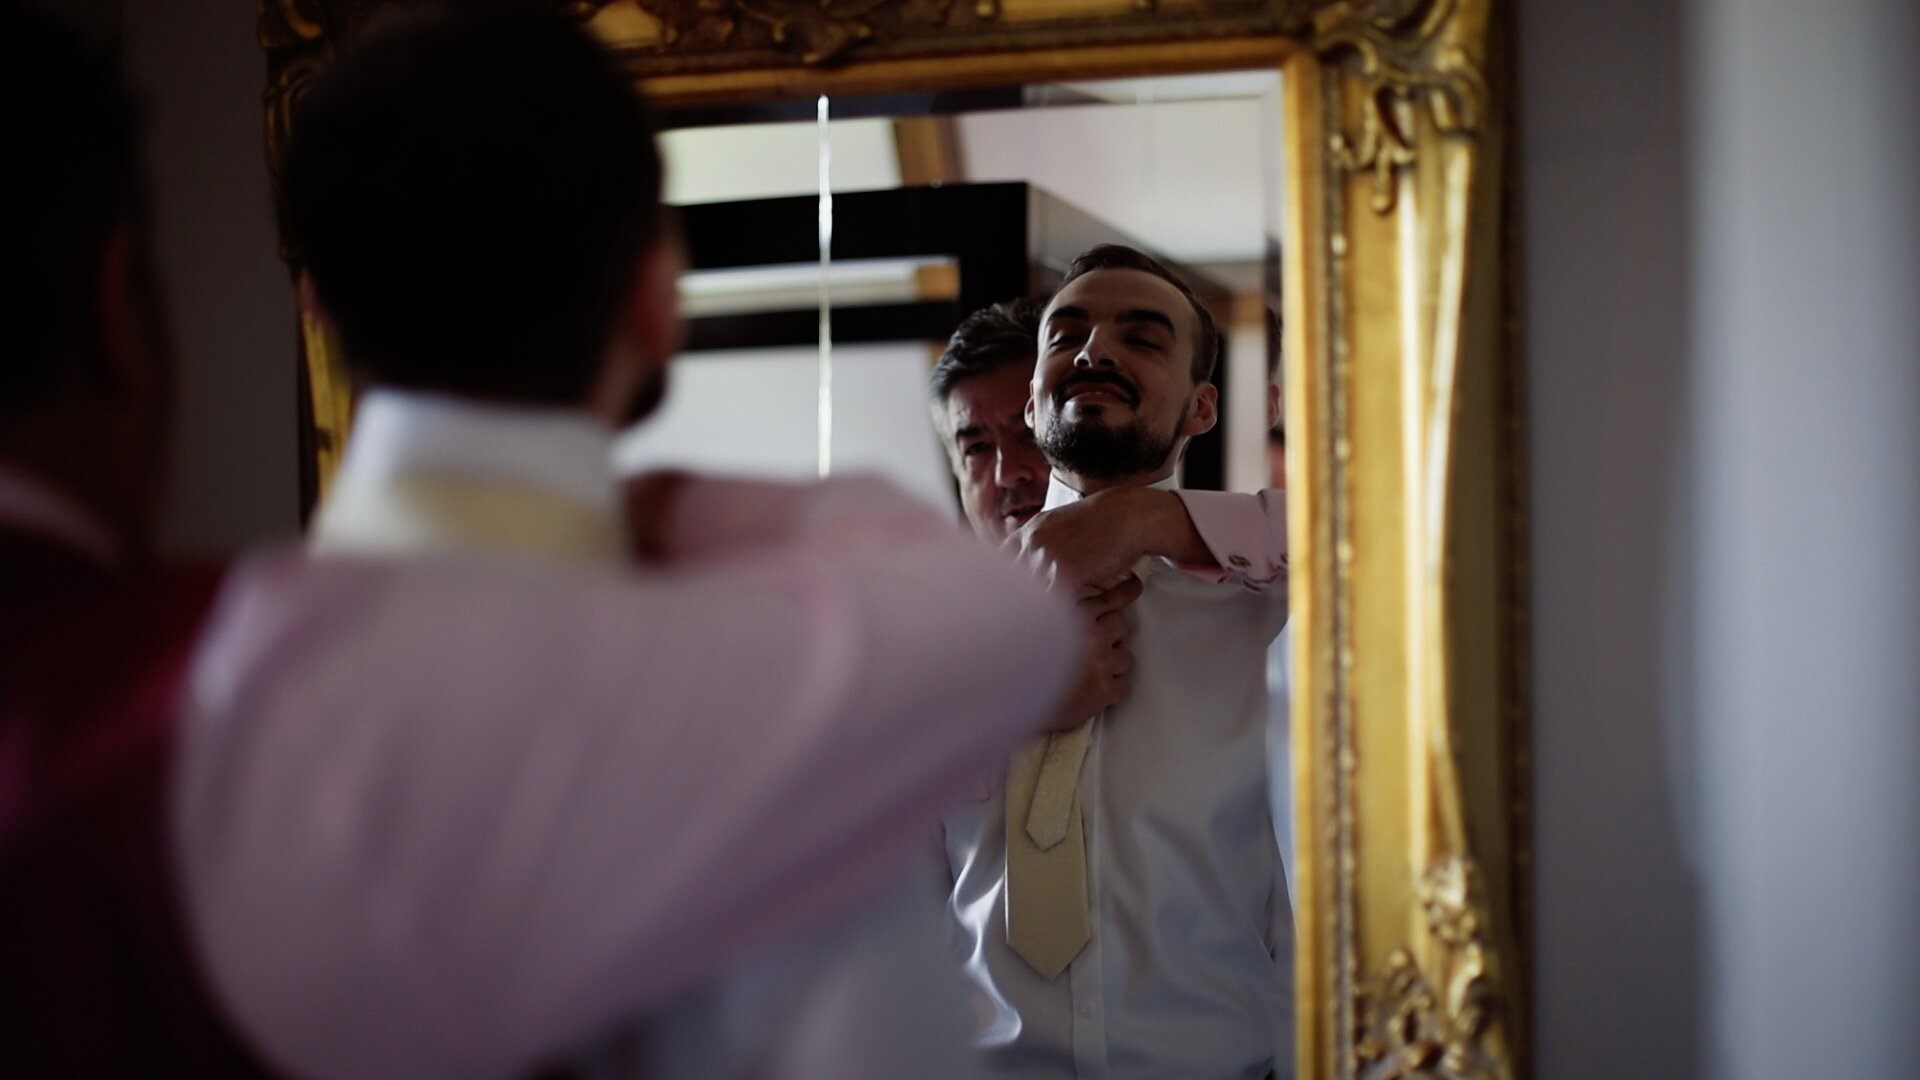 The groom getting his gold tie made into a Windsor knot with the help of his father.